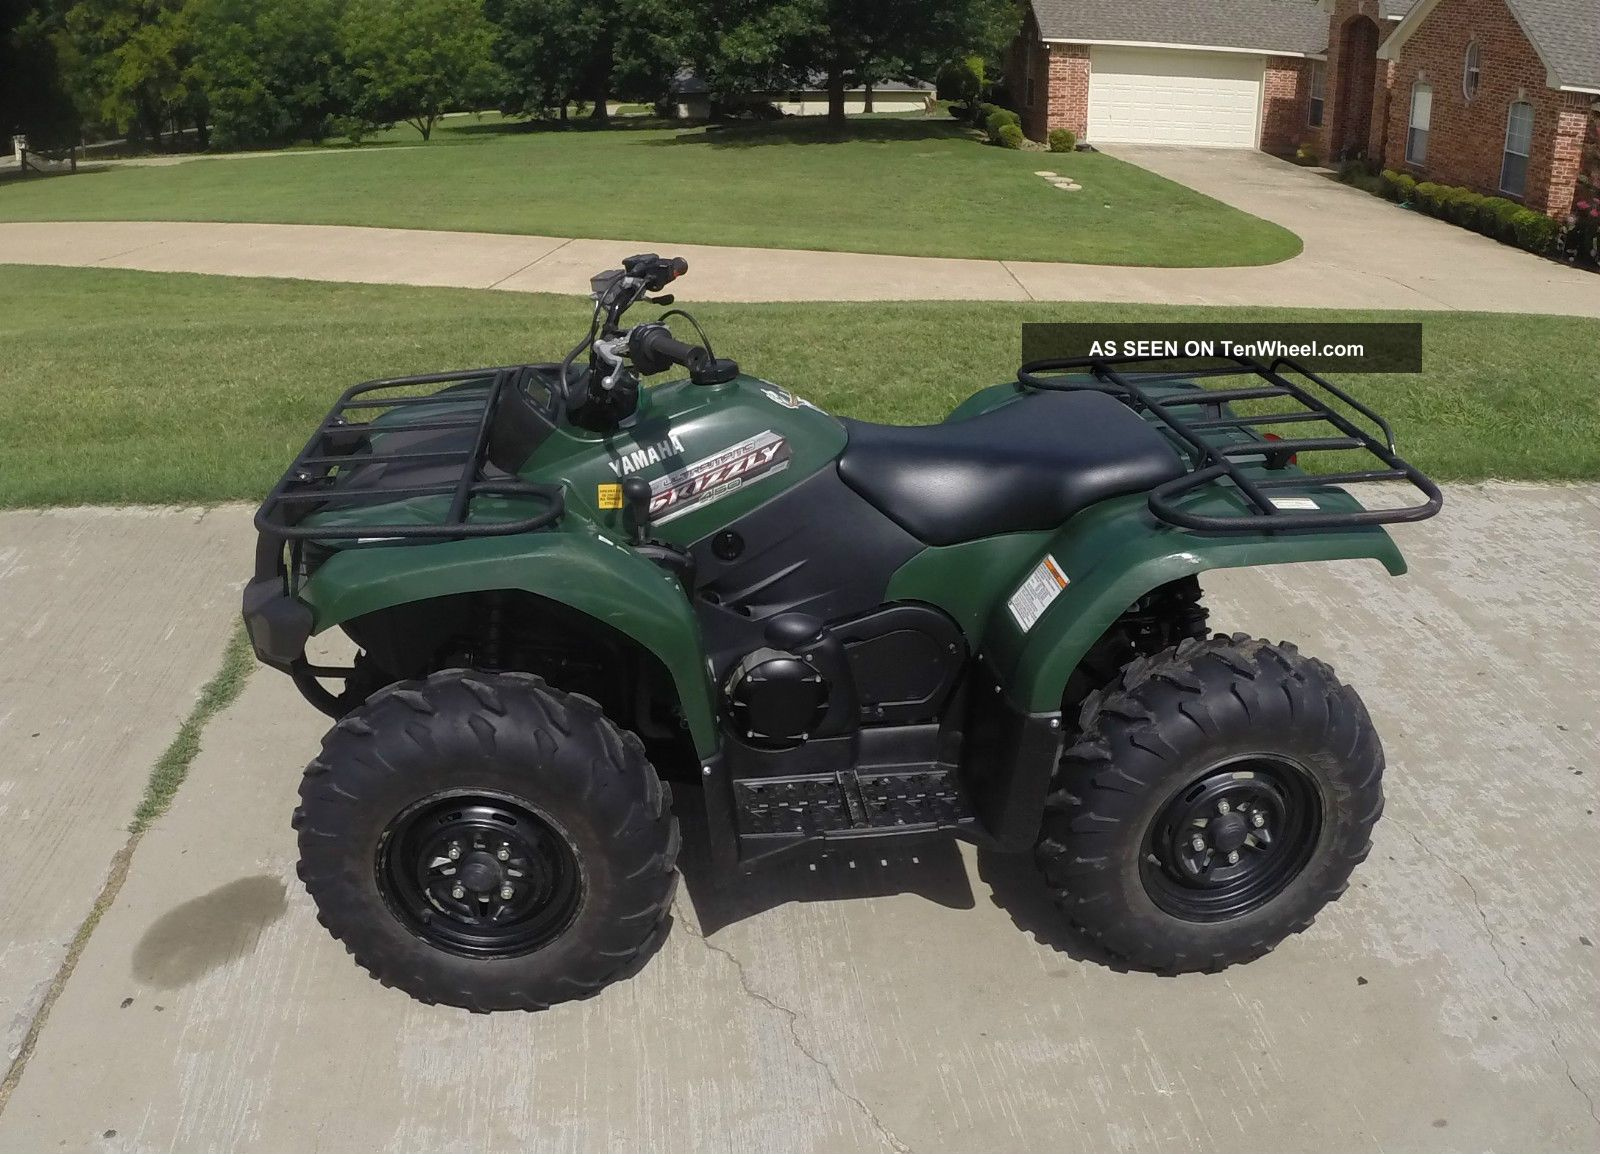 2014 yamaha grizzly 350 auto 4x4 specifications for 2014 yamaha grizzly 450 value